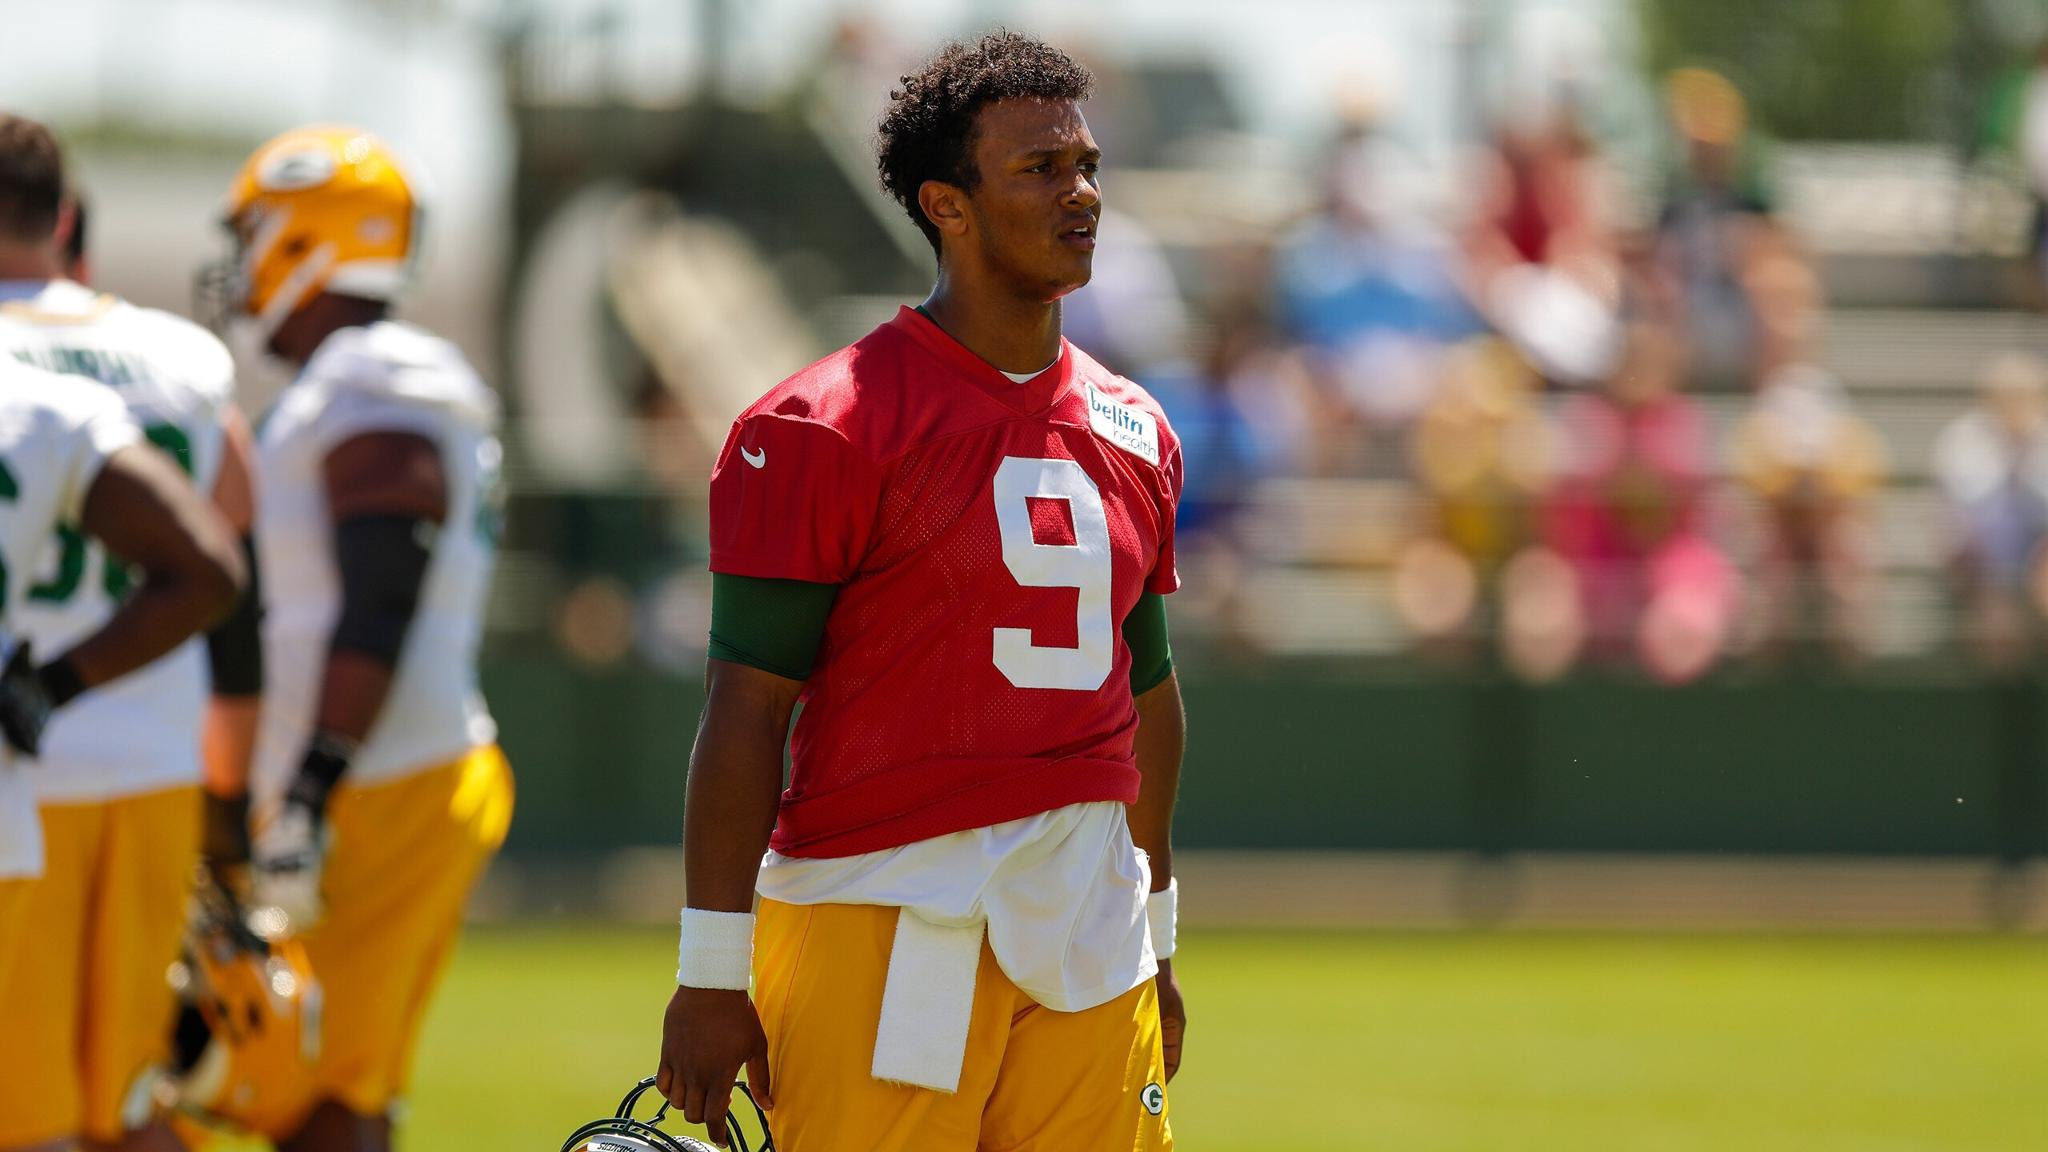 QB @deshonekizer gaining confidence as adjustments continue   ��: https://t.co/cQtgMIlkq4 https://t.co/mkL6dqsTGd